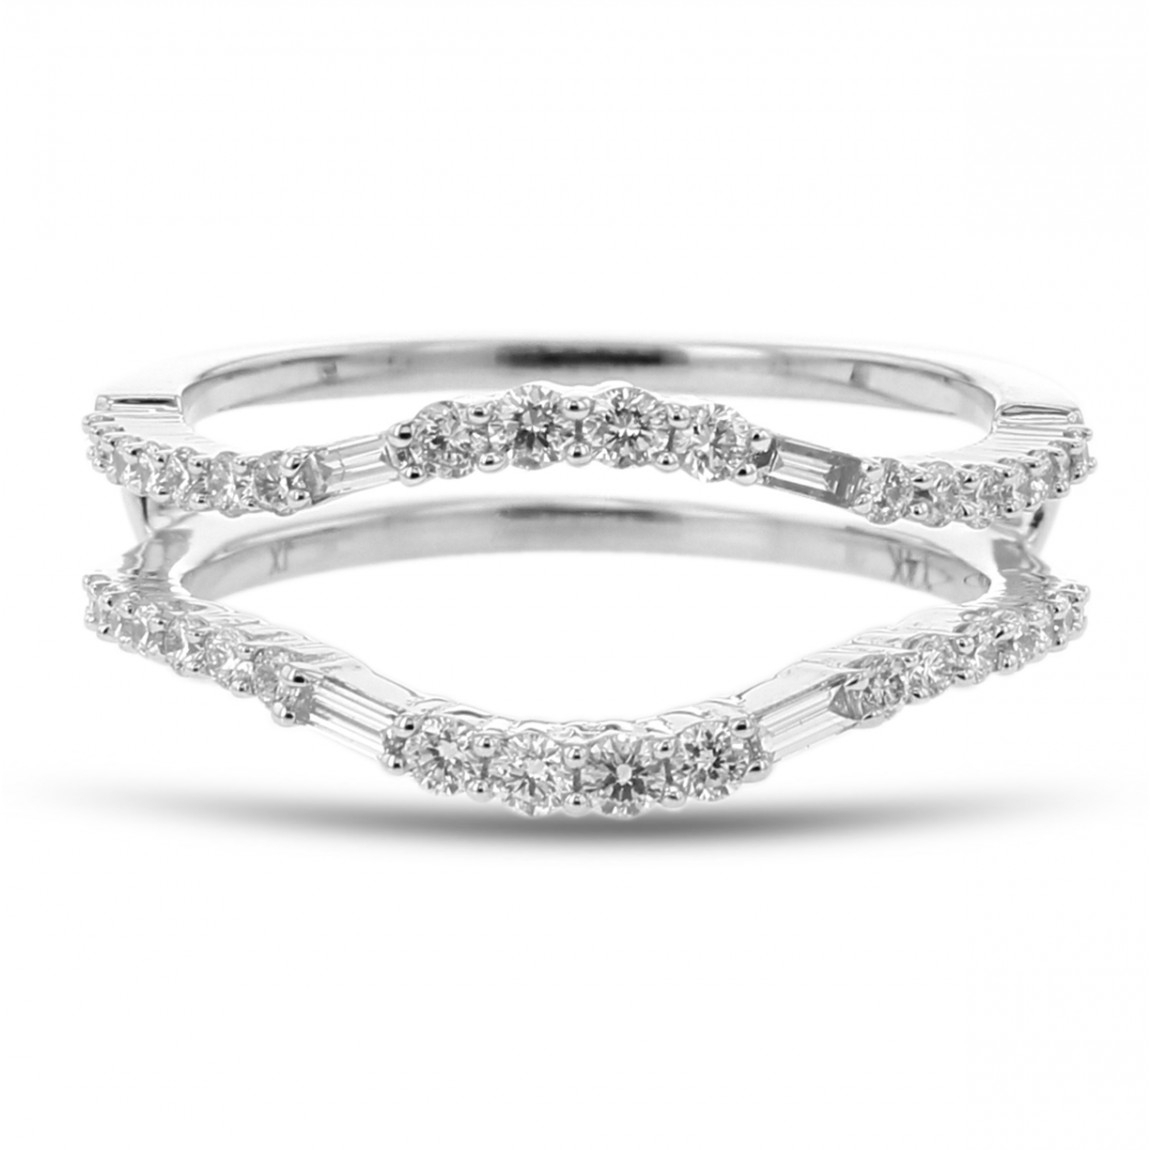 Diamond Cradle Wedding Band, Ring Enhancer, Baguette And Round, 14K White  Gold,  (View 8 of 25)